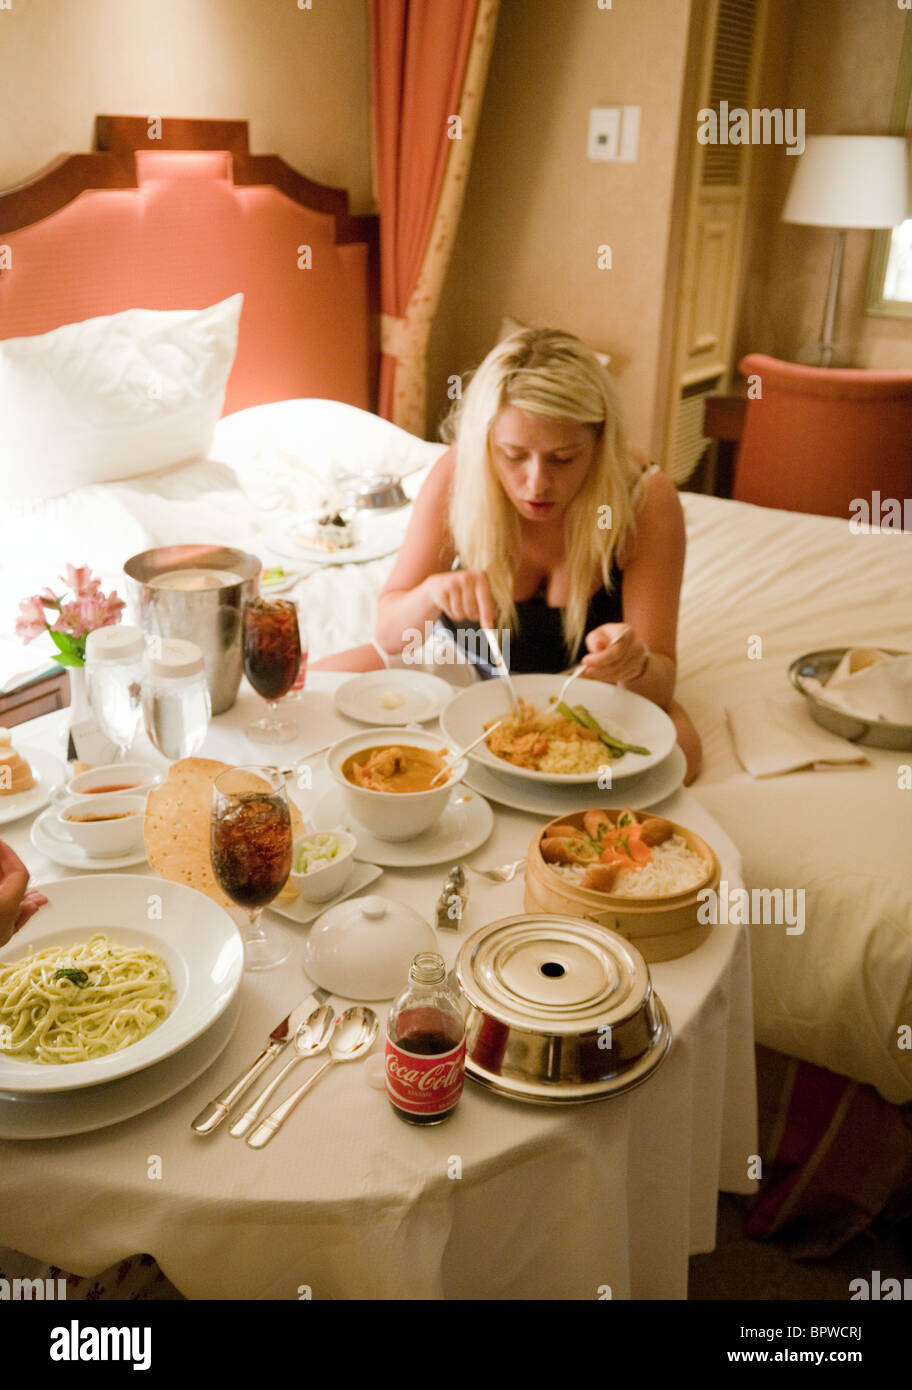 Room Service: Teenage Girls Enjoying A Meal In Their Hotel Room From